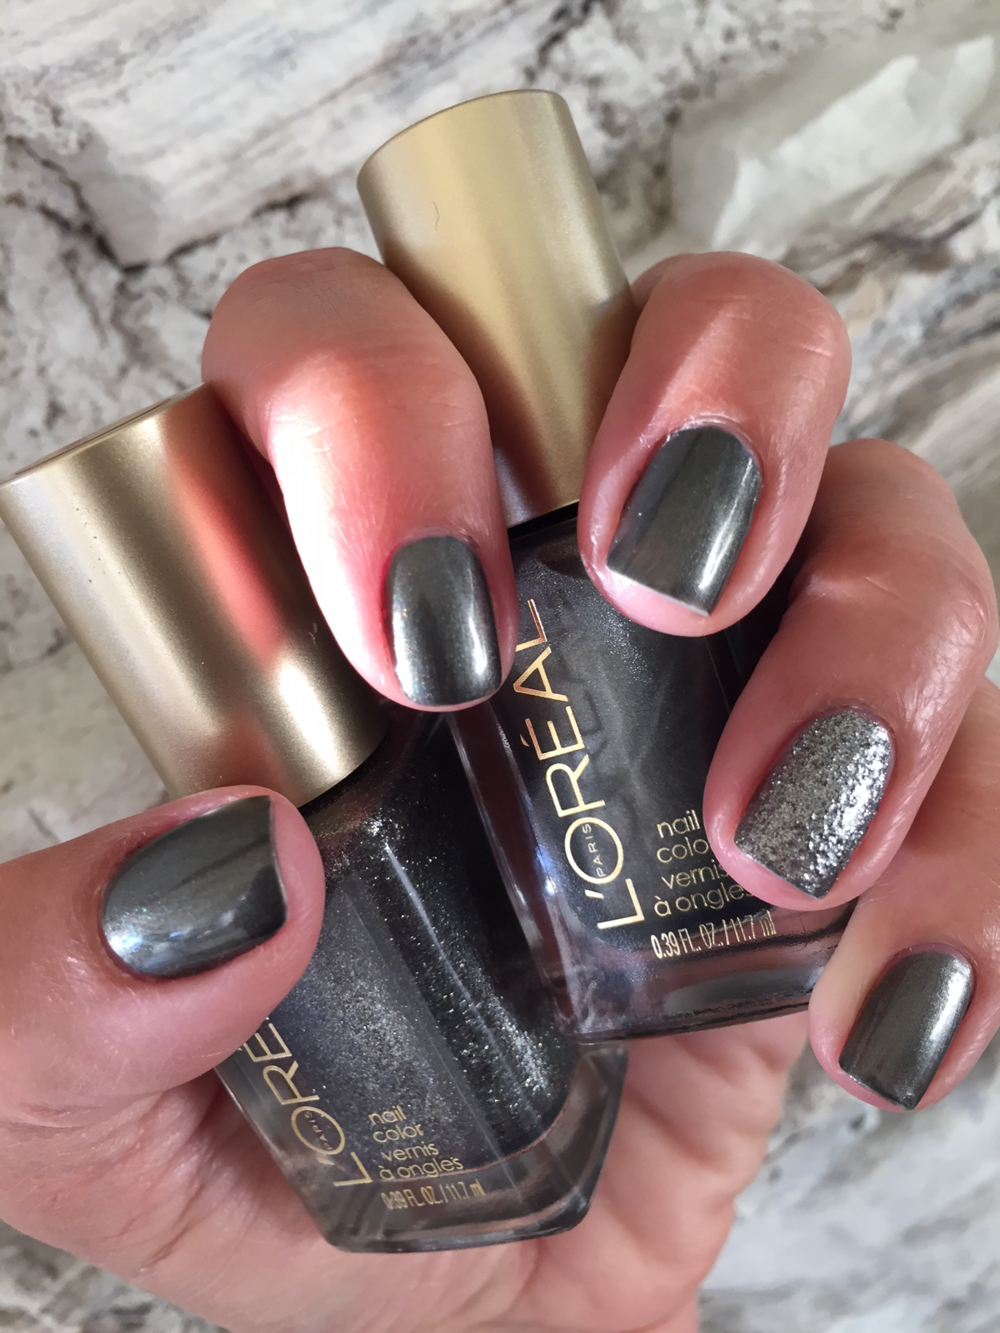 L'Oreal Nail Color, Miss Grey - 707, Caution Please (textured accent nail) - 702